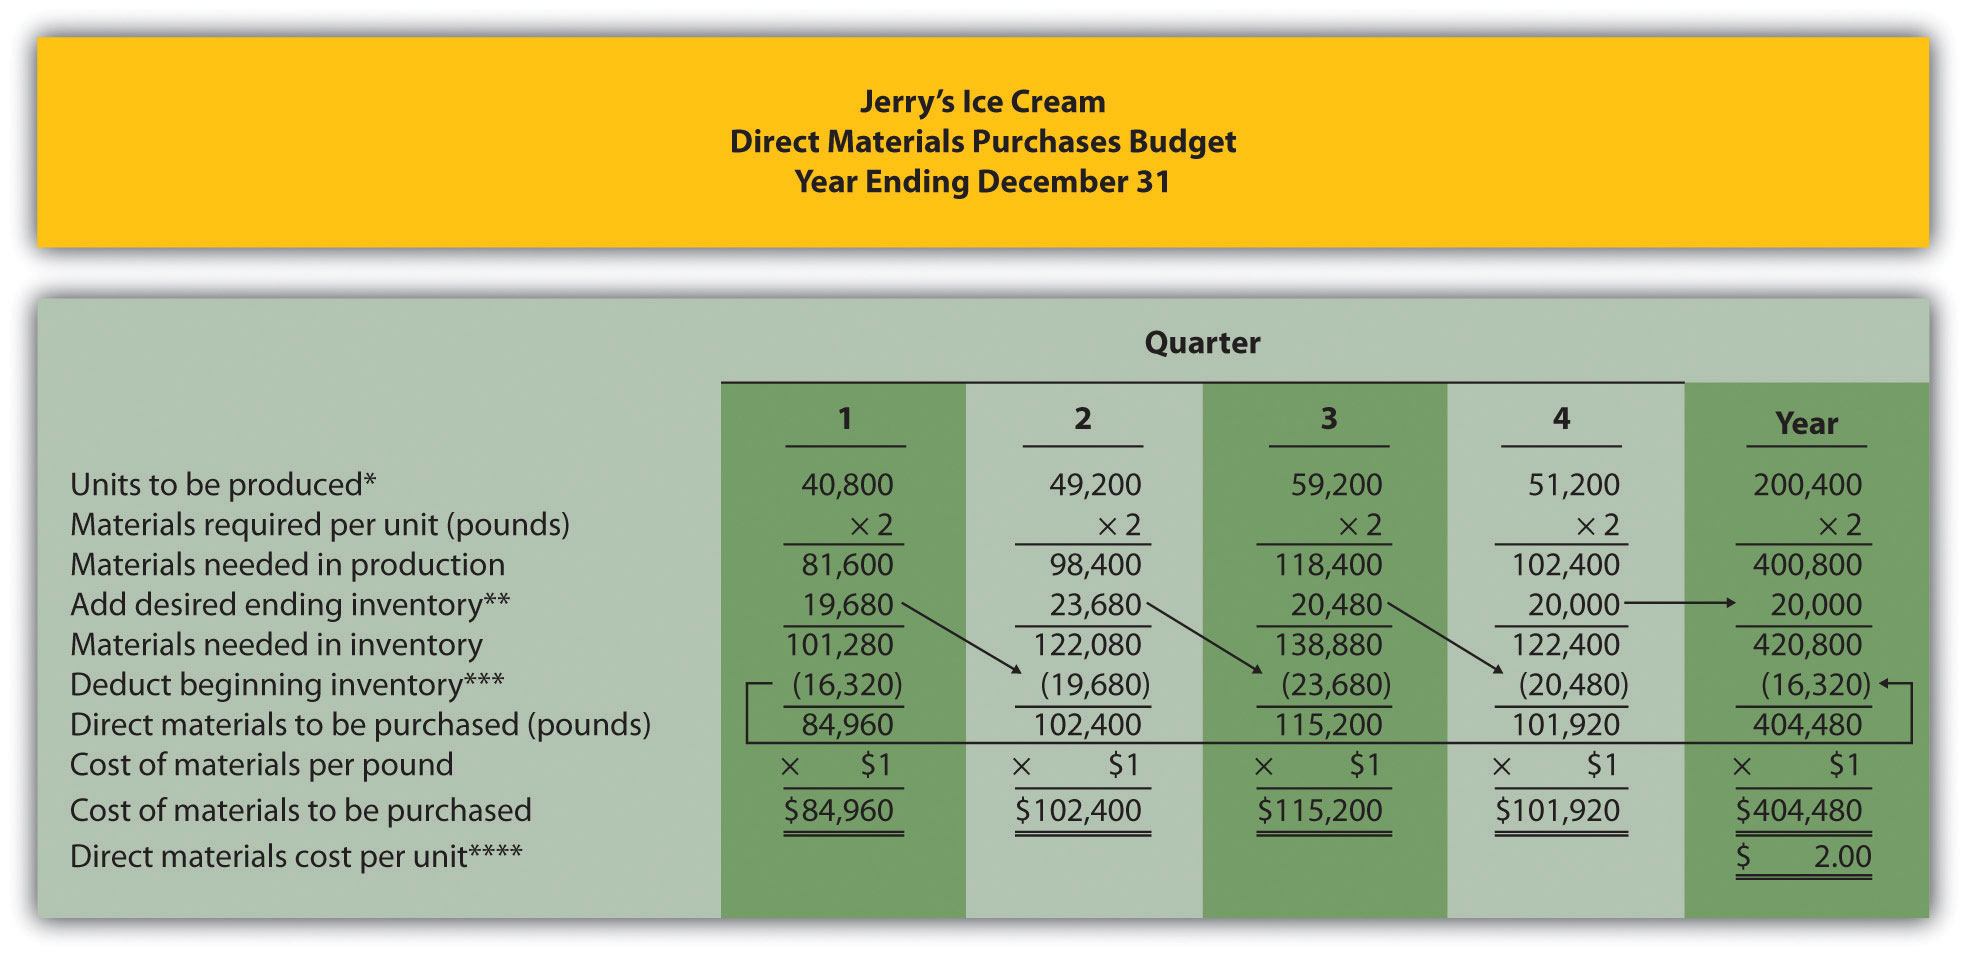 Figure 9.5 Direct Materials Purchases Budget for Jerry's Ice Cream